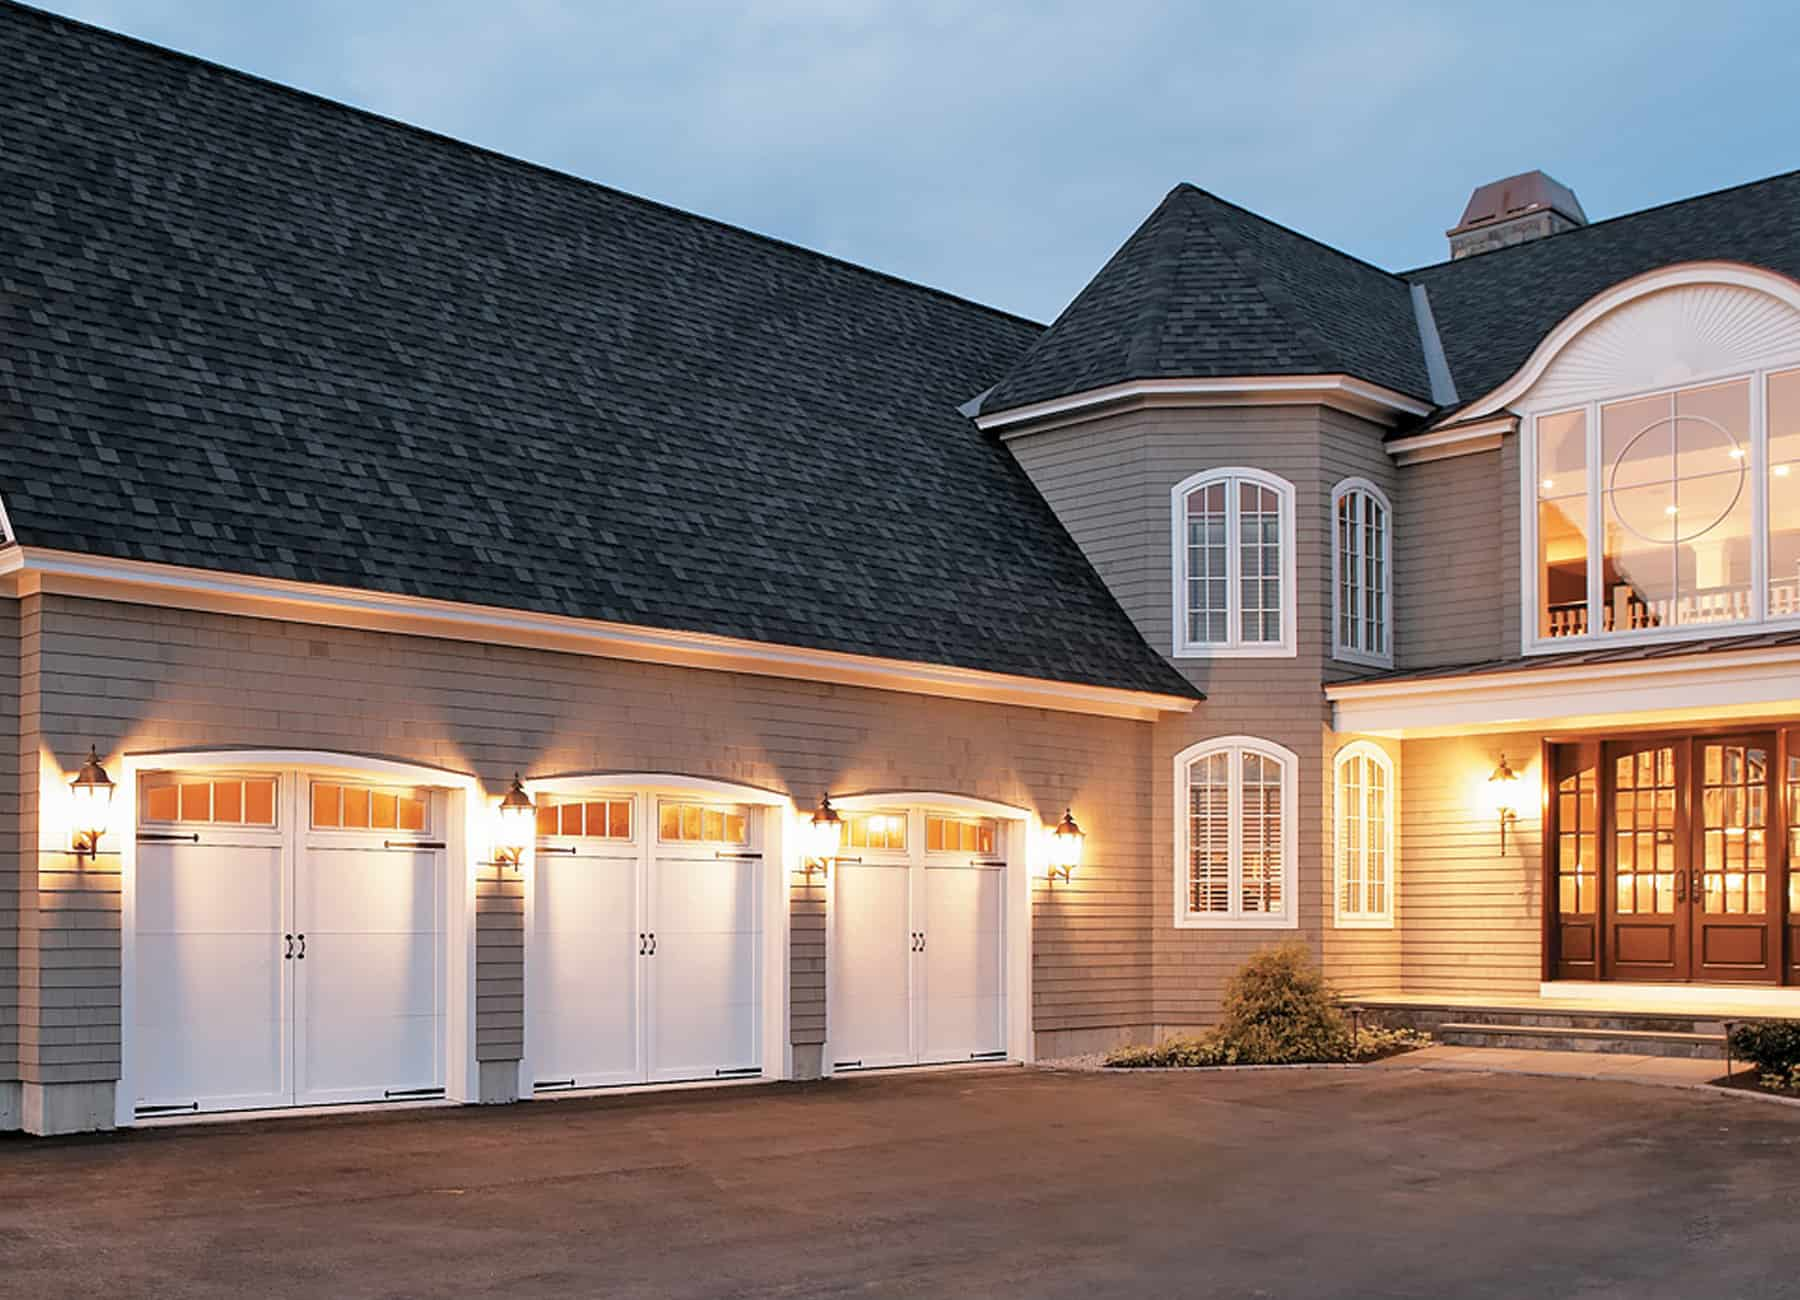 , Impression Steel Garage Doors, Overhead Door Company of Battle Creek Jackson & Ann Arbor